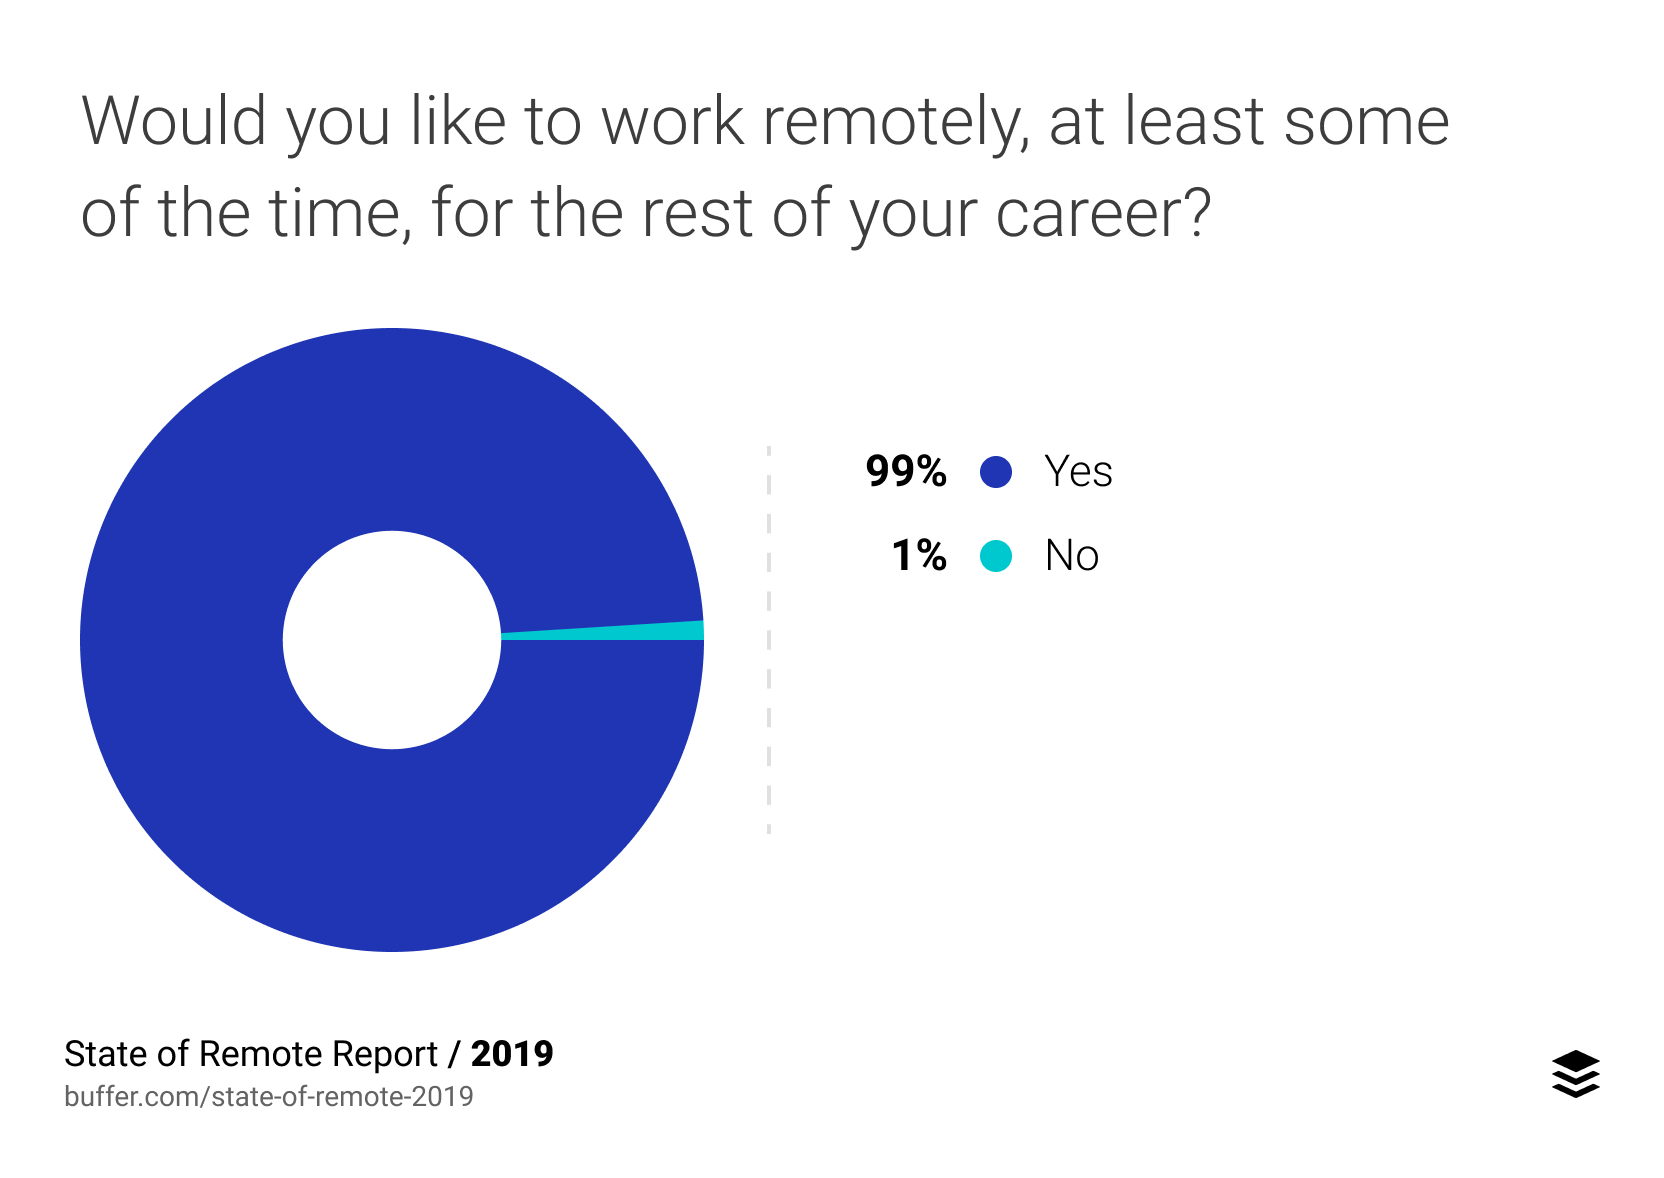 Would you like to work remotely, at least some of the time, for the rest of your career?